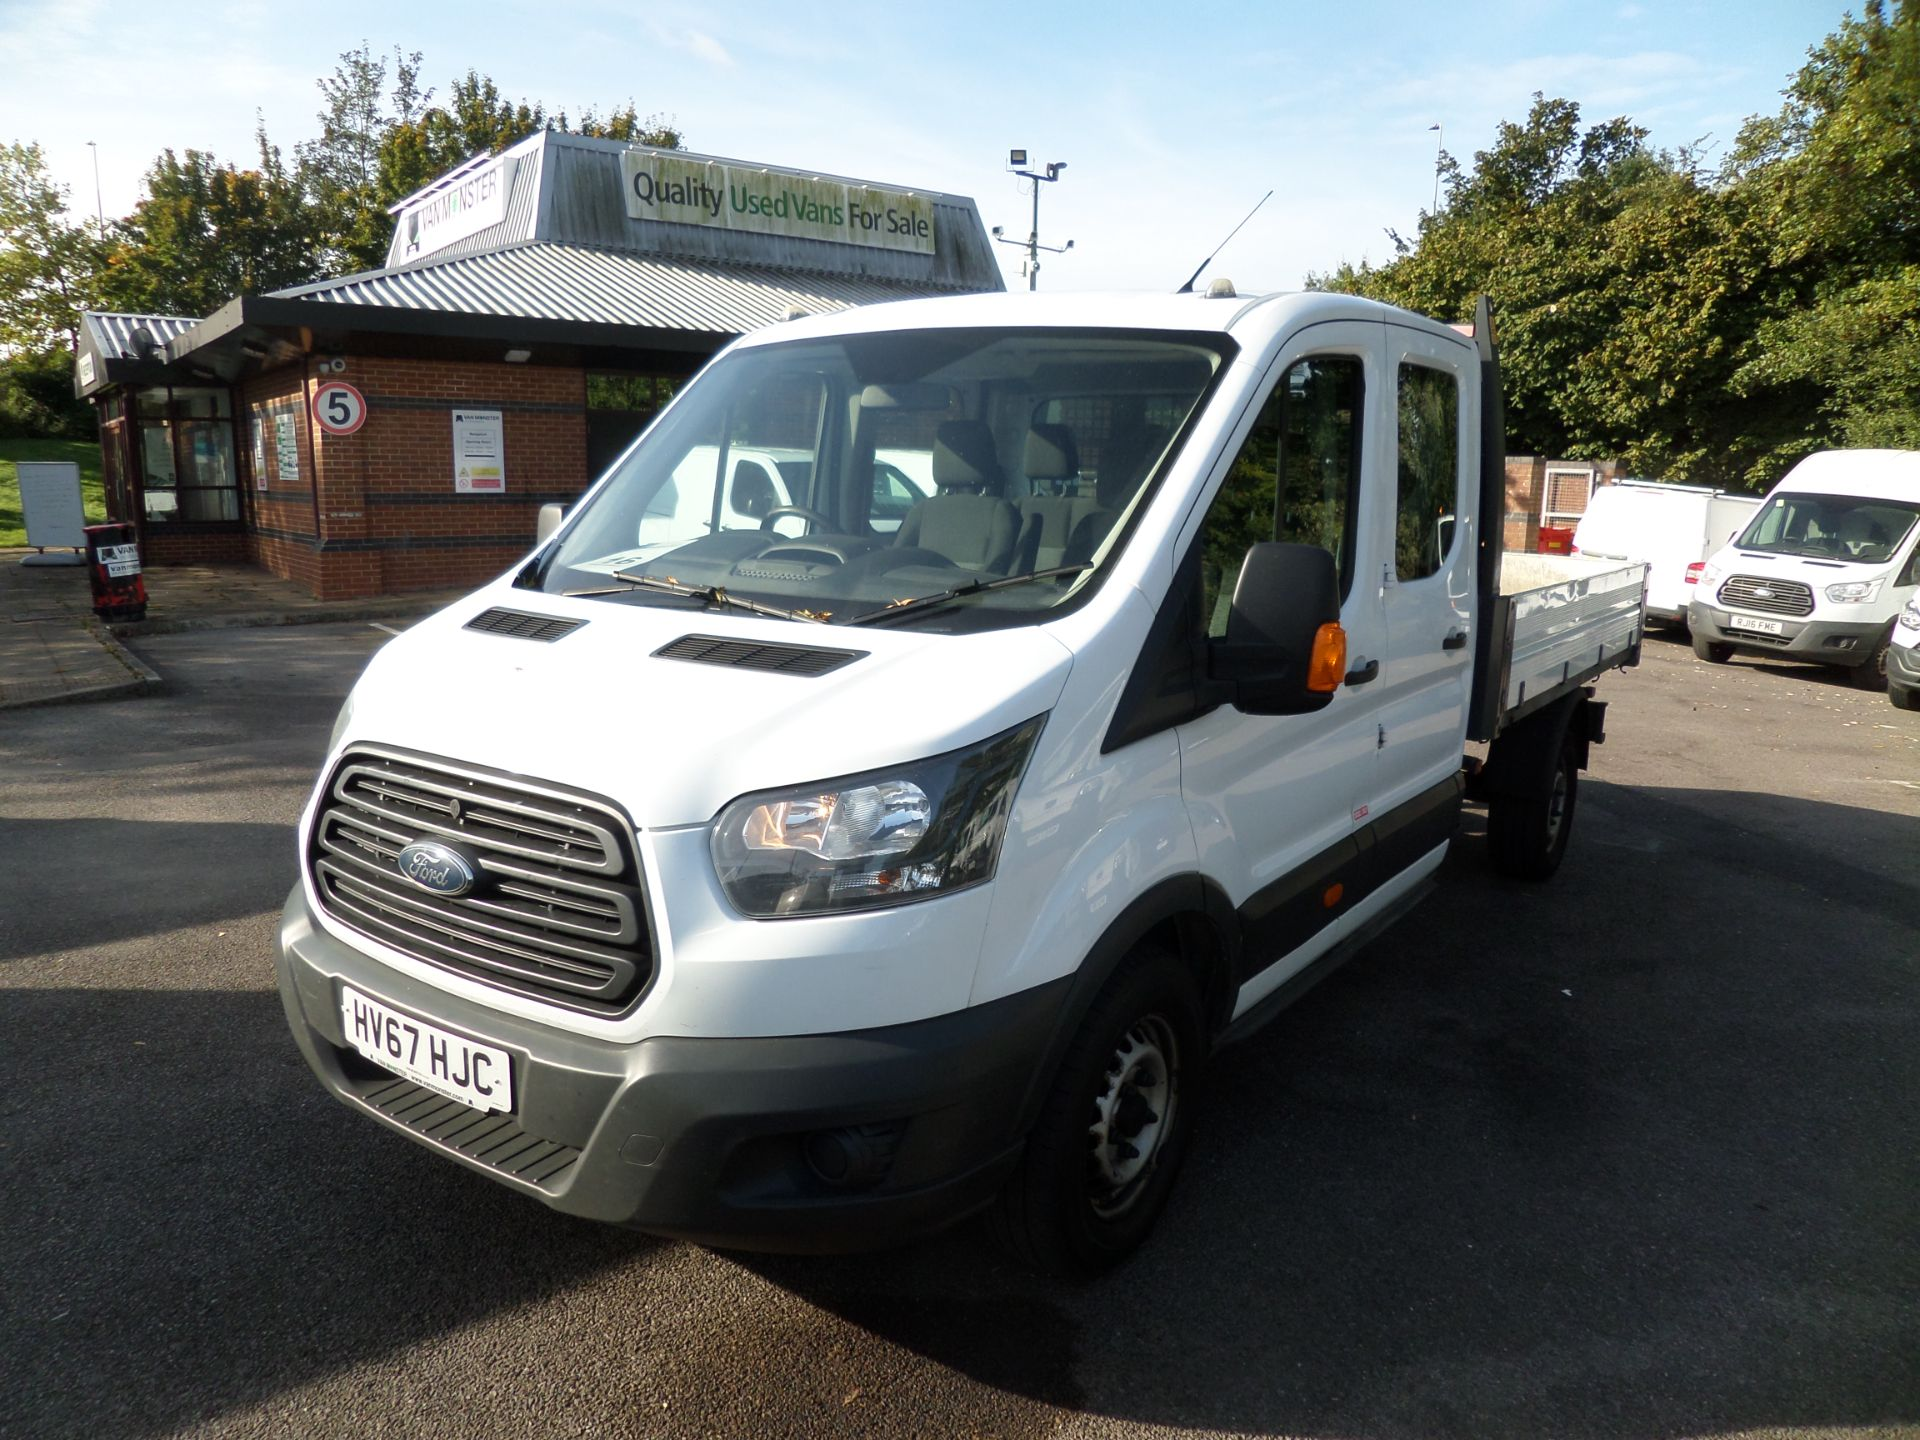 2017 Ford Transit 2.0 Tdci 105Ps H2 Double Cab Tipper Euro 6 (HV67HJC) Image 10